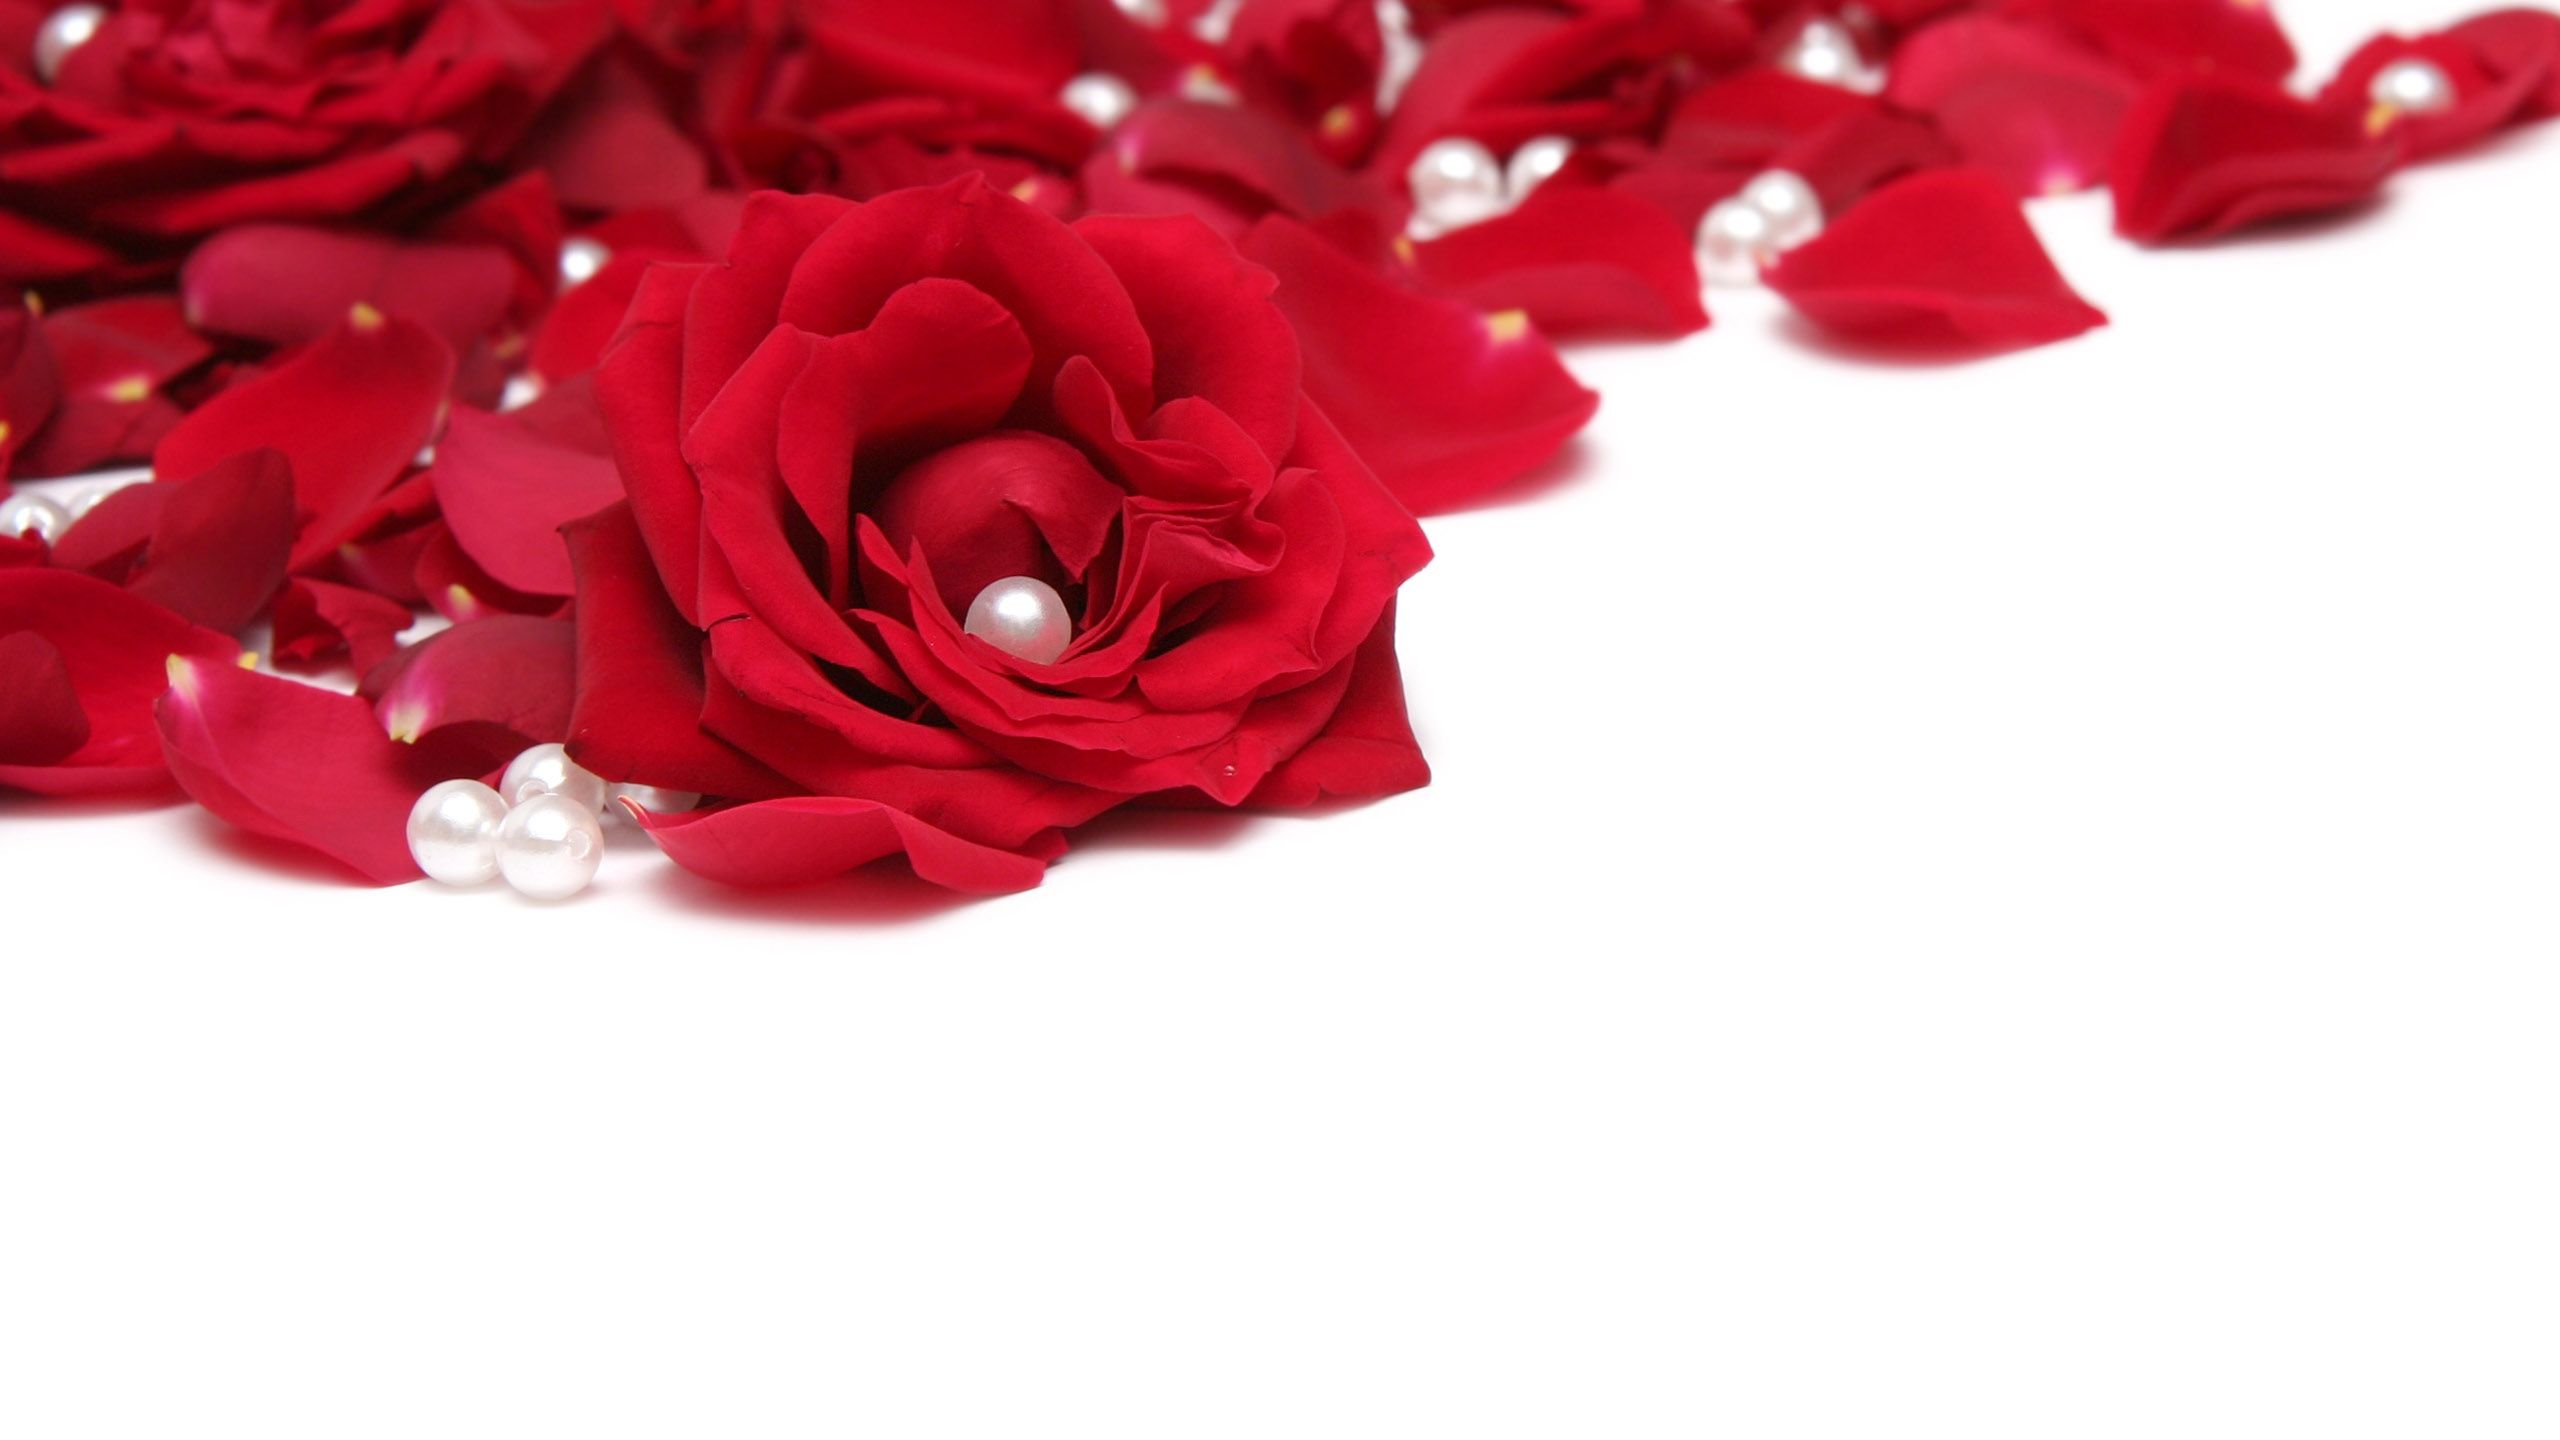 Red rose petals wallpaper  PC en